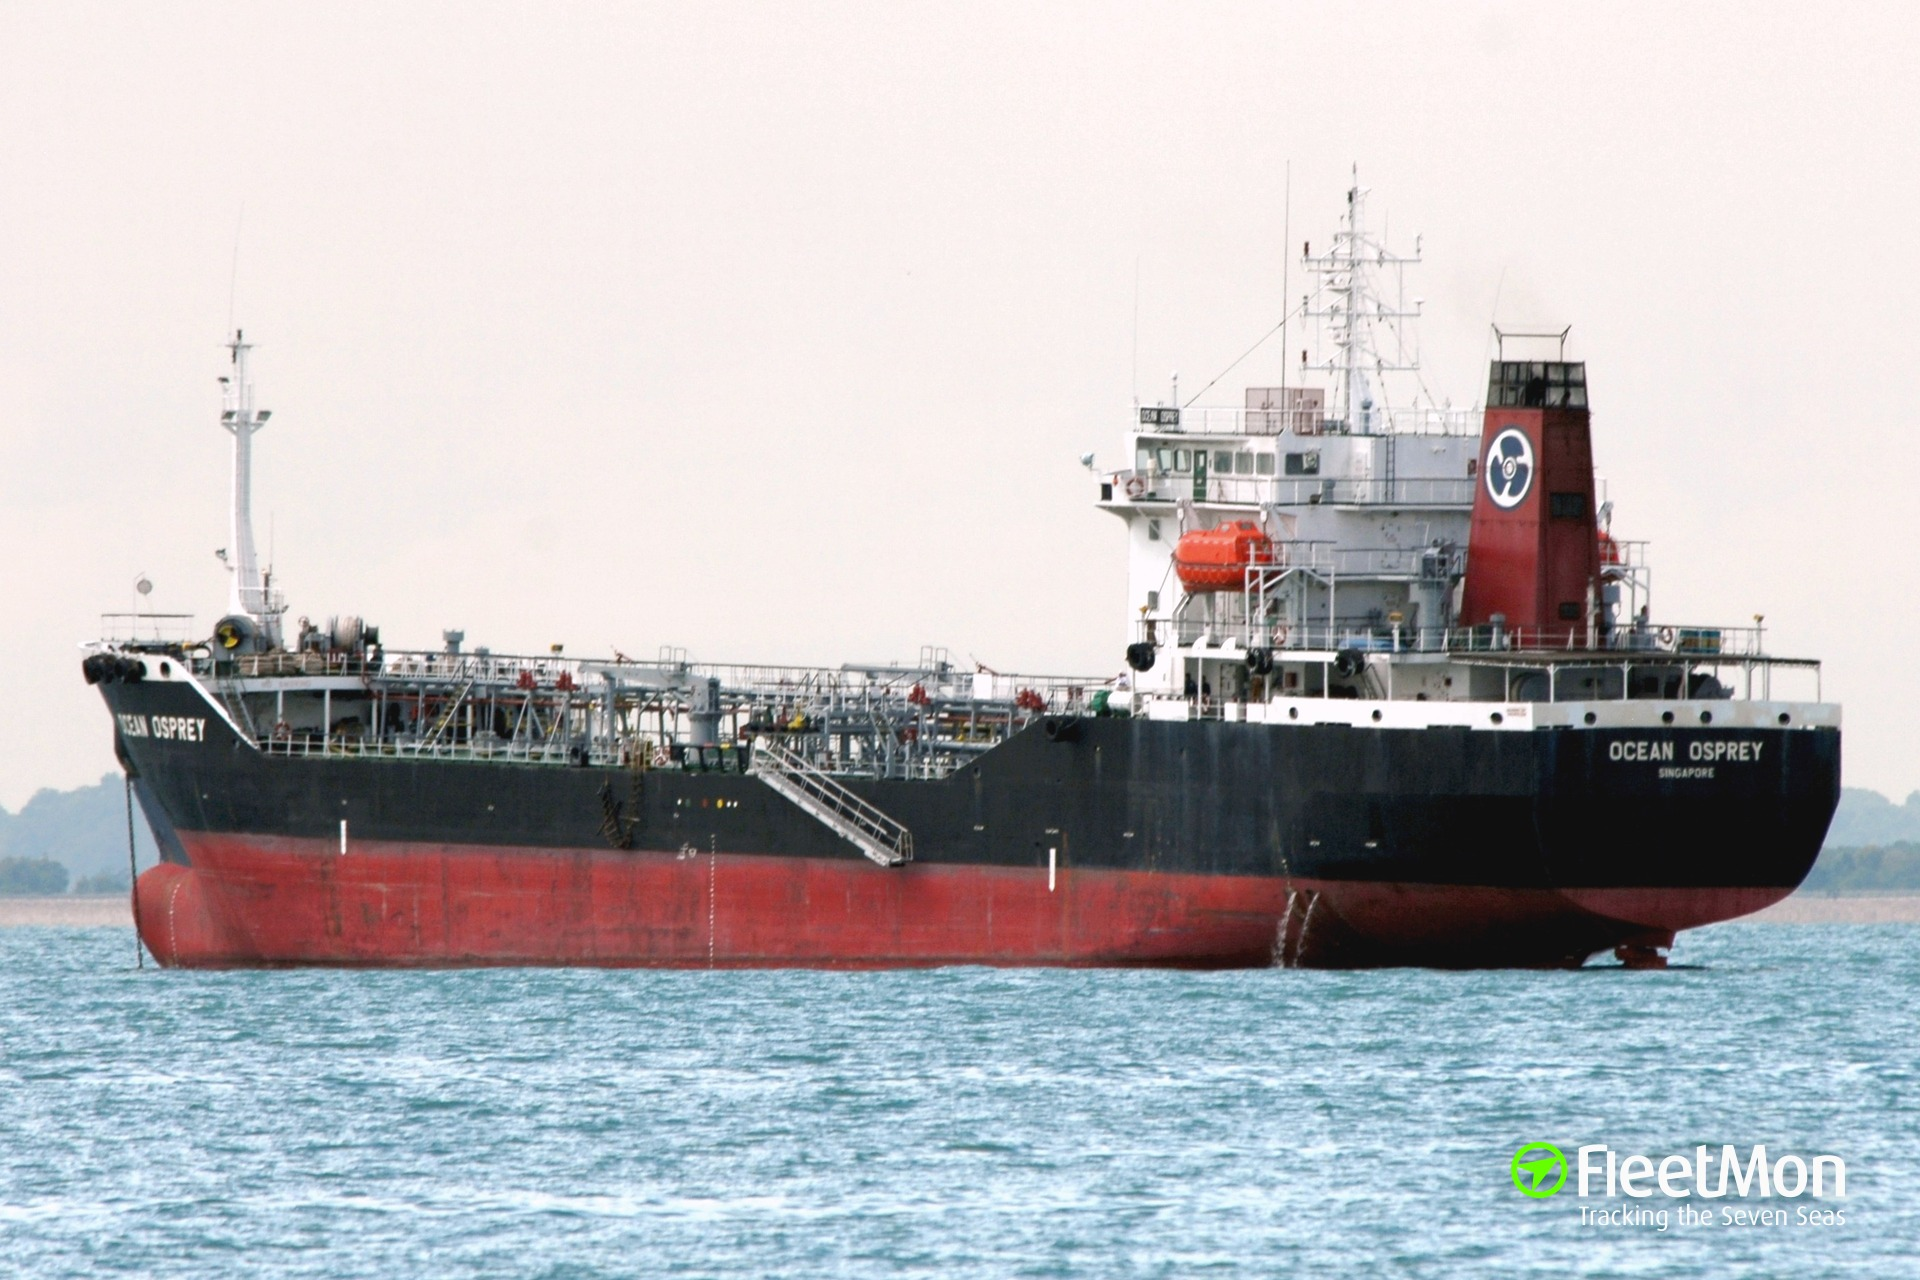 Tanker attacked off Phuket probably mt Ocean Osprey